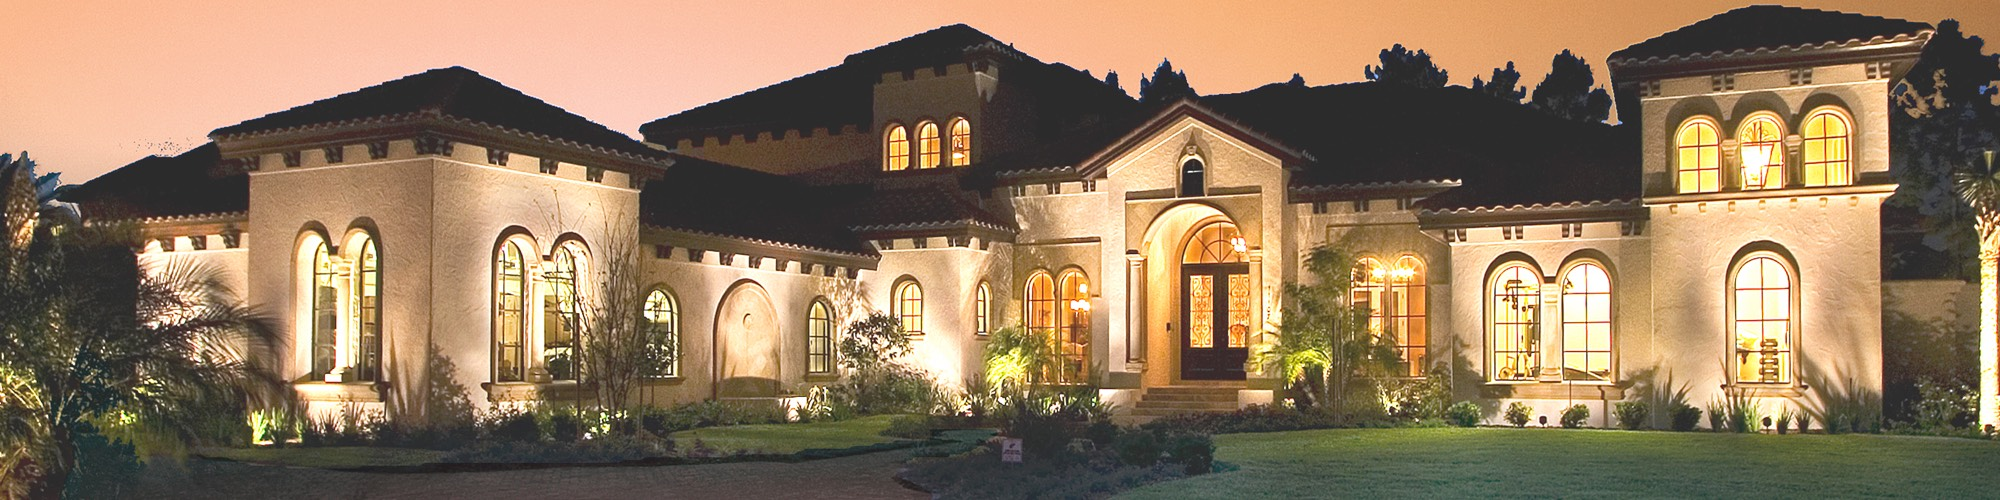 Street view of large Florida style home lit up at dusk